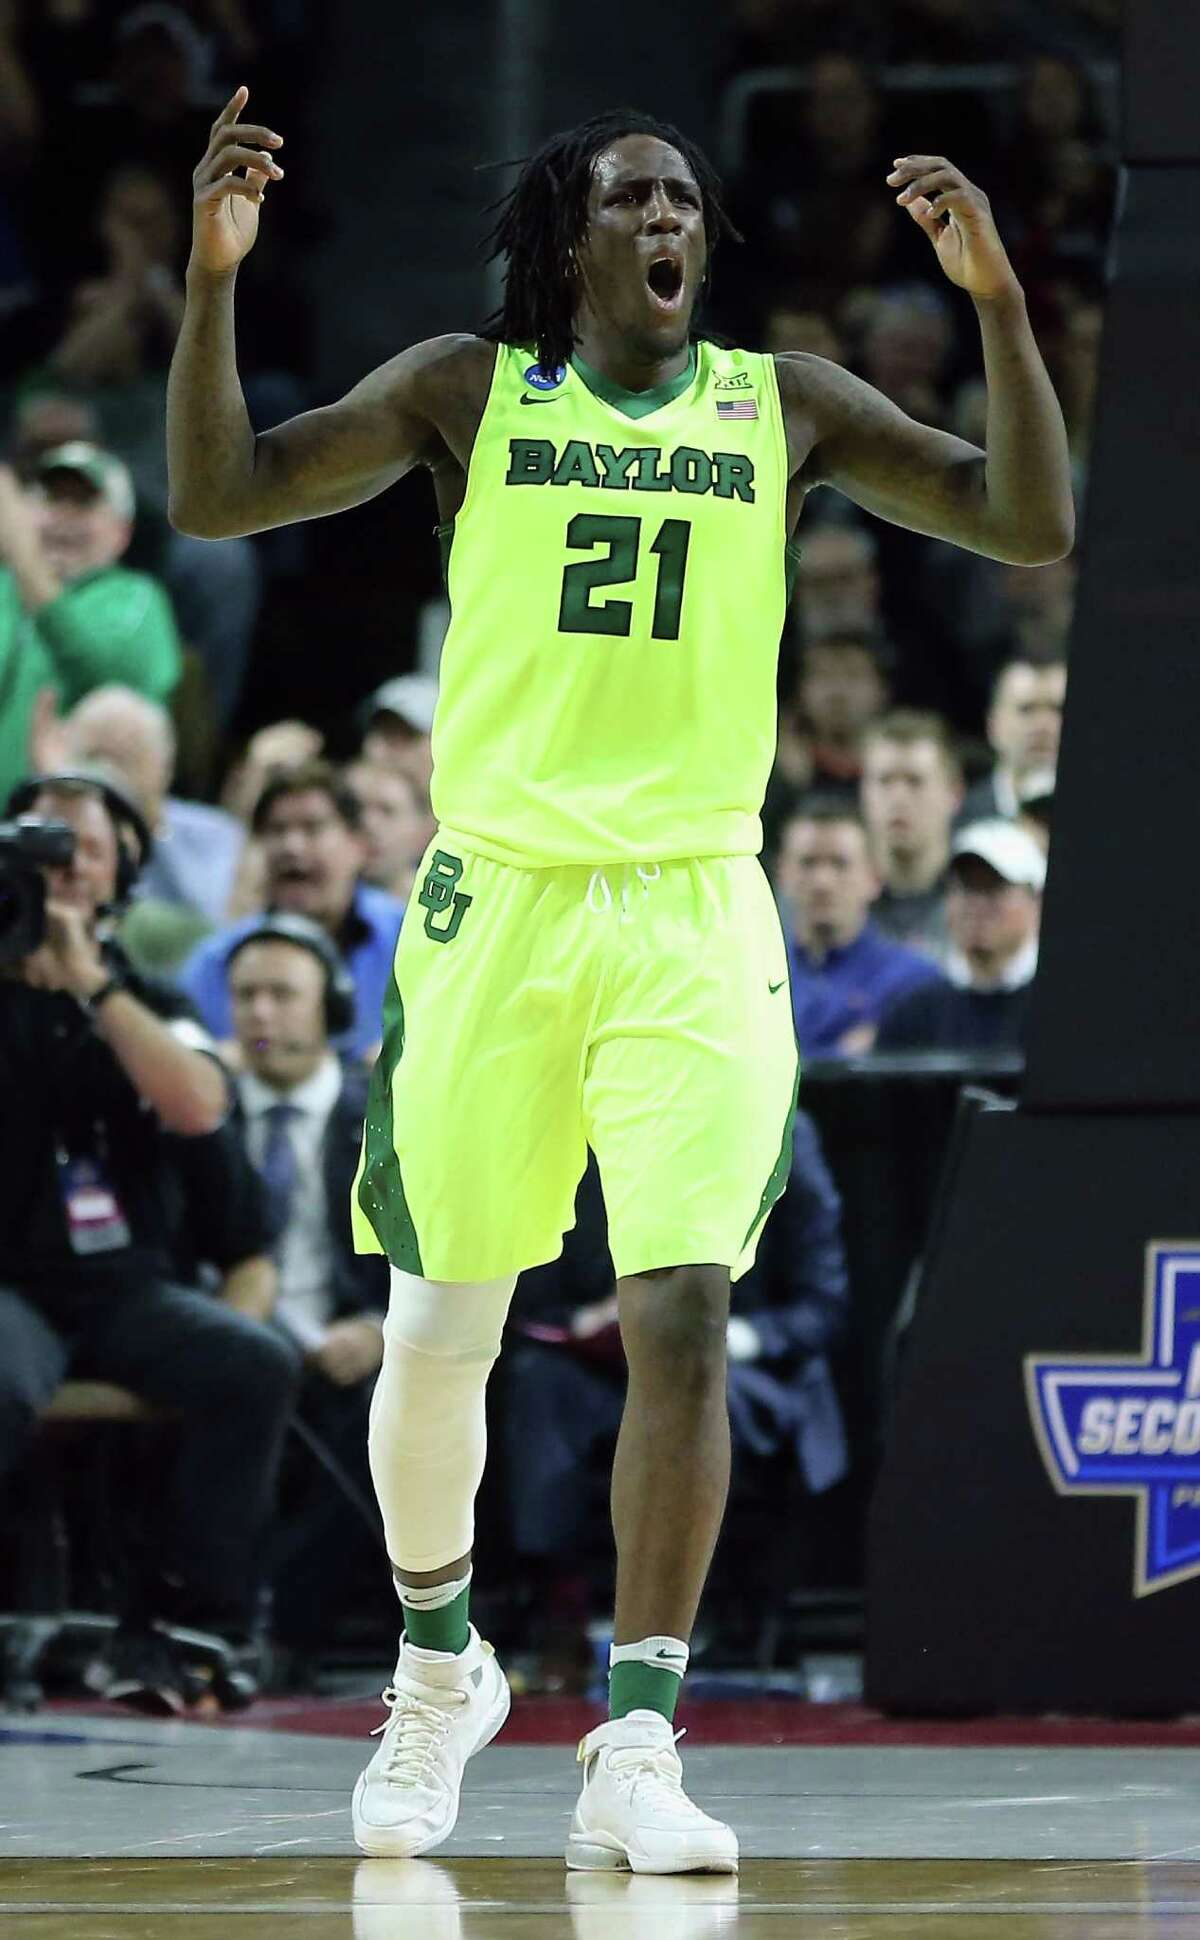 PROVIDENCE, RI - MARCH 17: Taurean Prince #21 of the Baylor Bears reacts in the first half against the Yale Bulldogs during the first round of the 2016 NCAA Men's Basketball Tournament at Dunkin' Donuts Center on March 17, 2016 in Providence, Rhode Island.